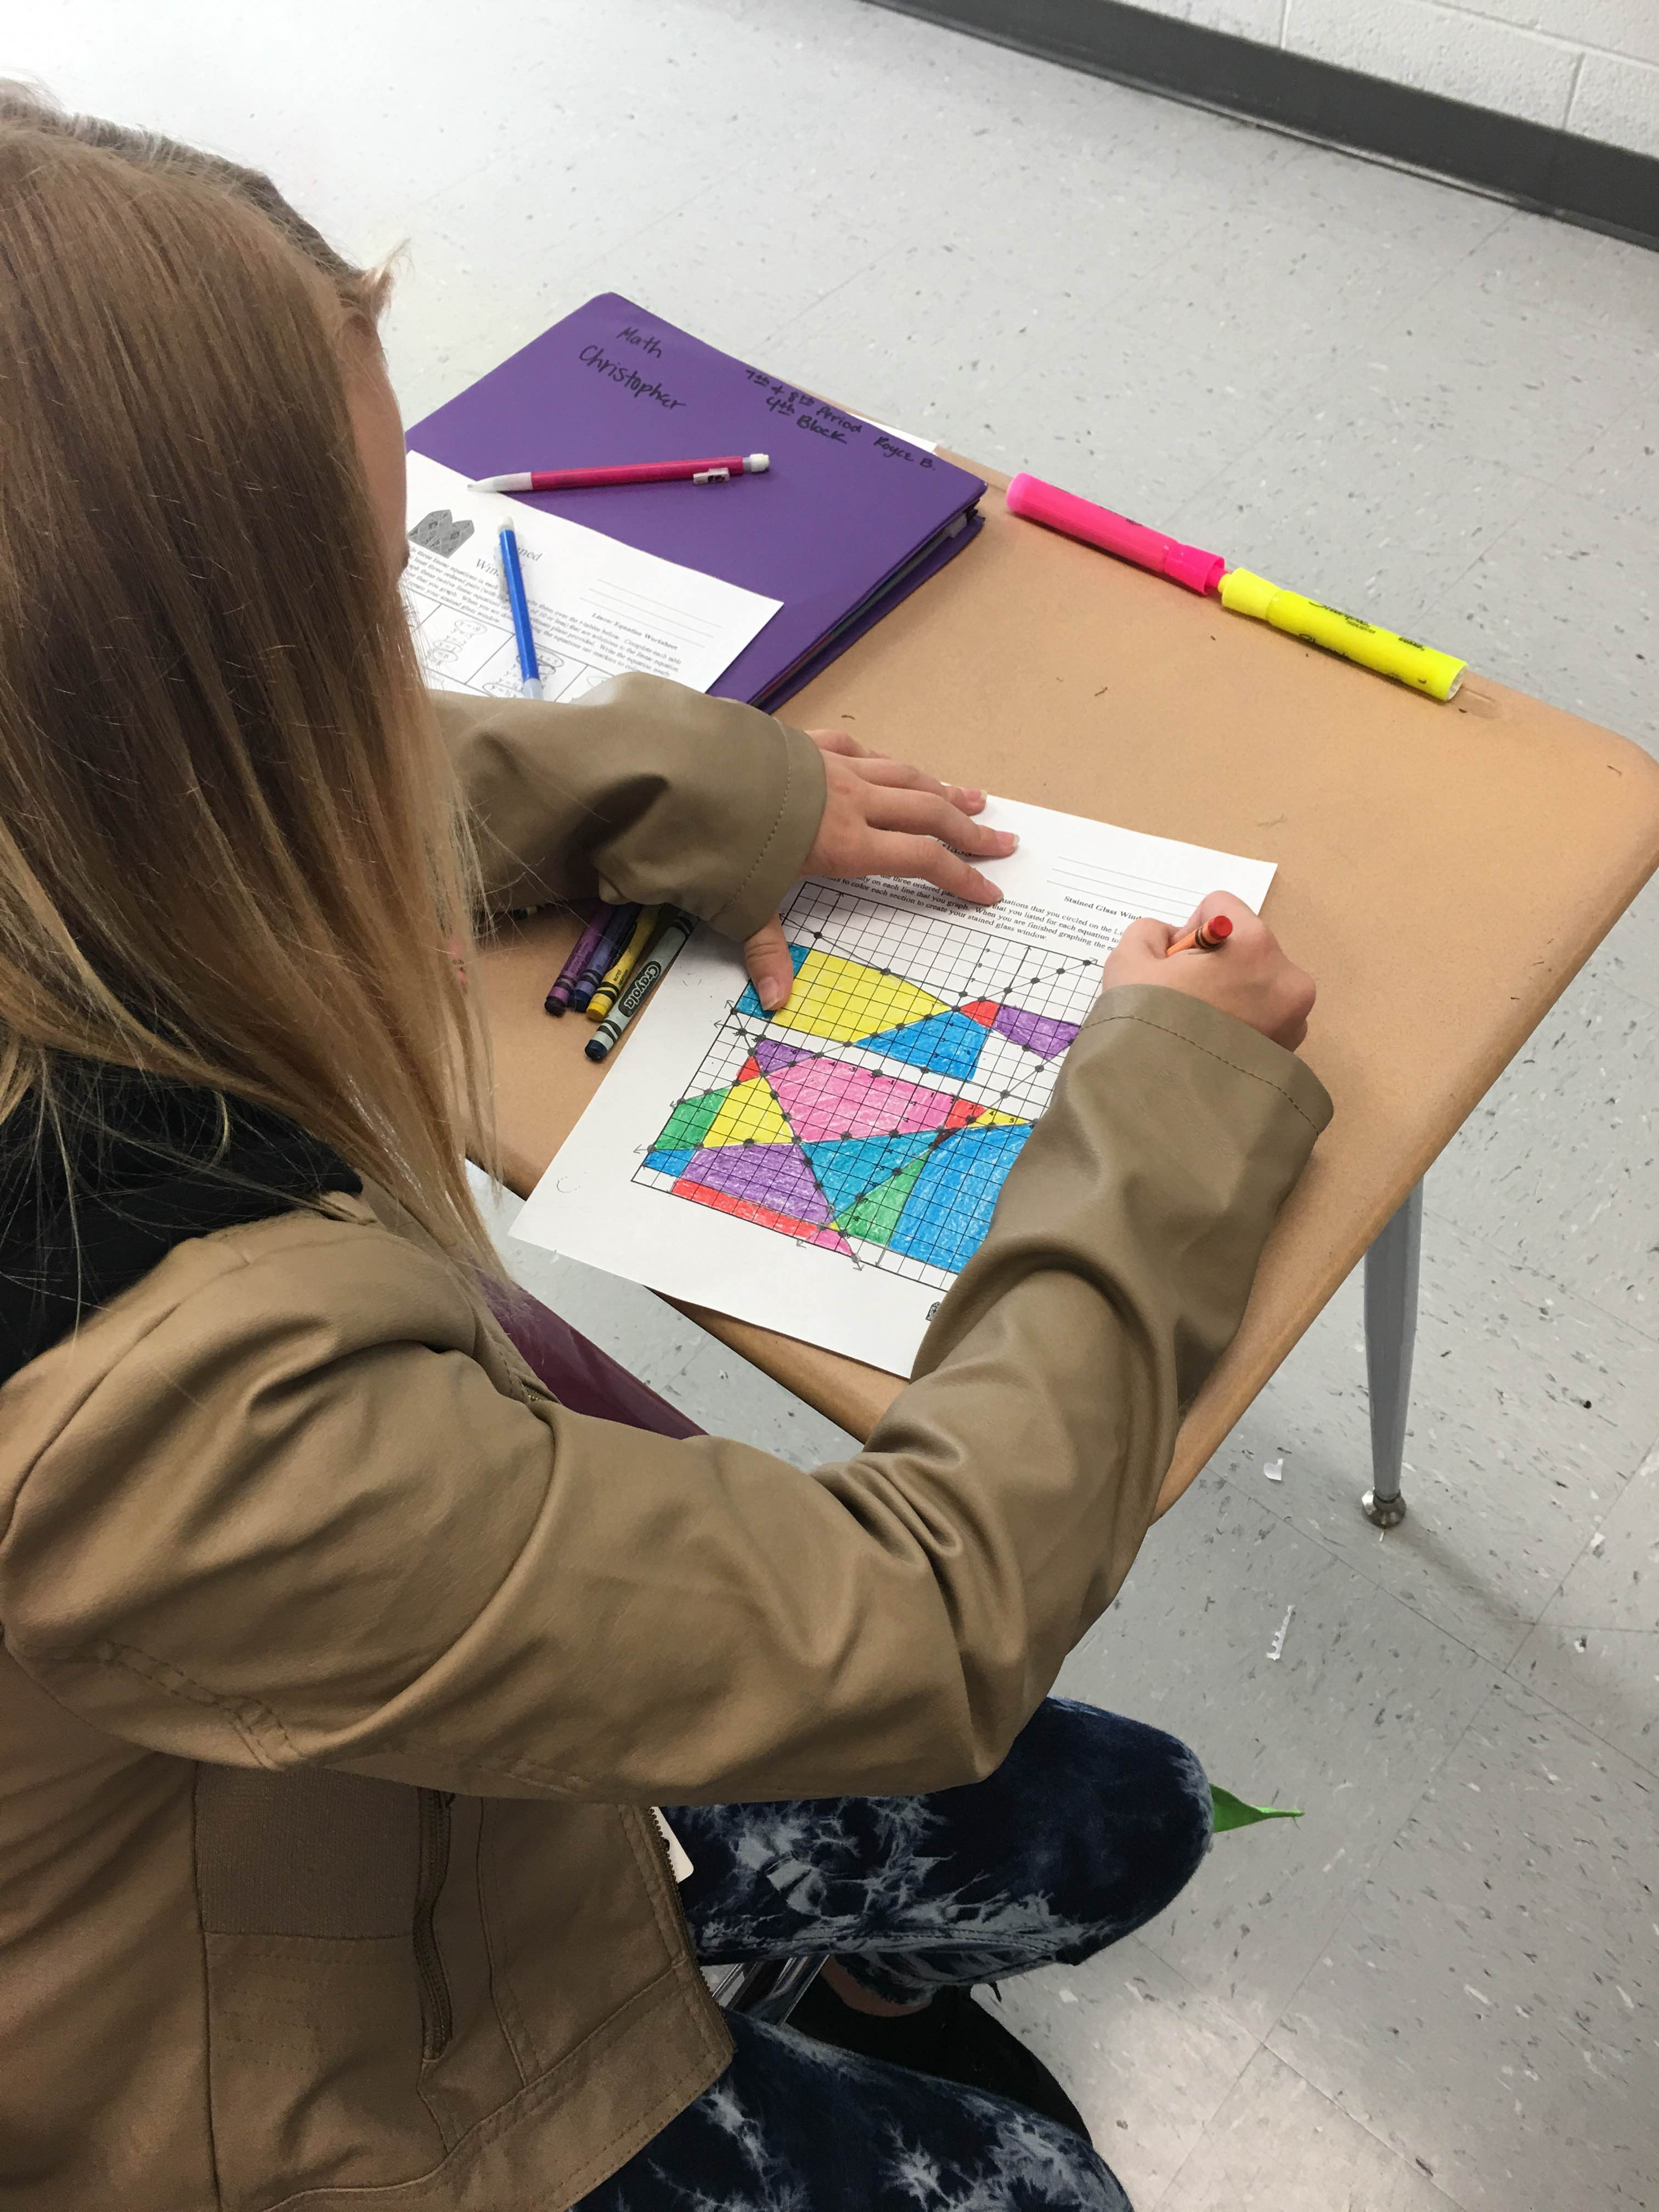 8th grade math creates stained glass windows by graphing functions